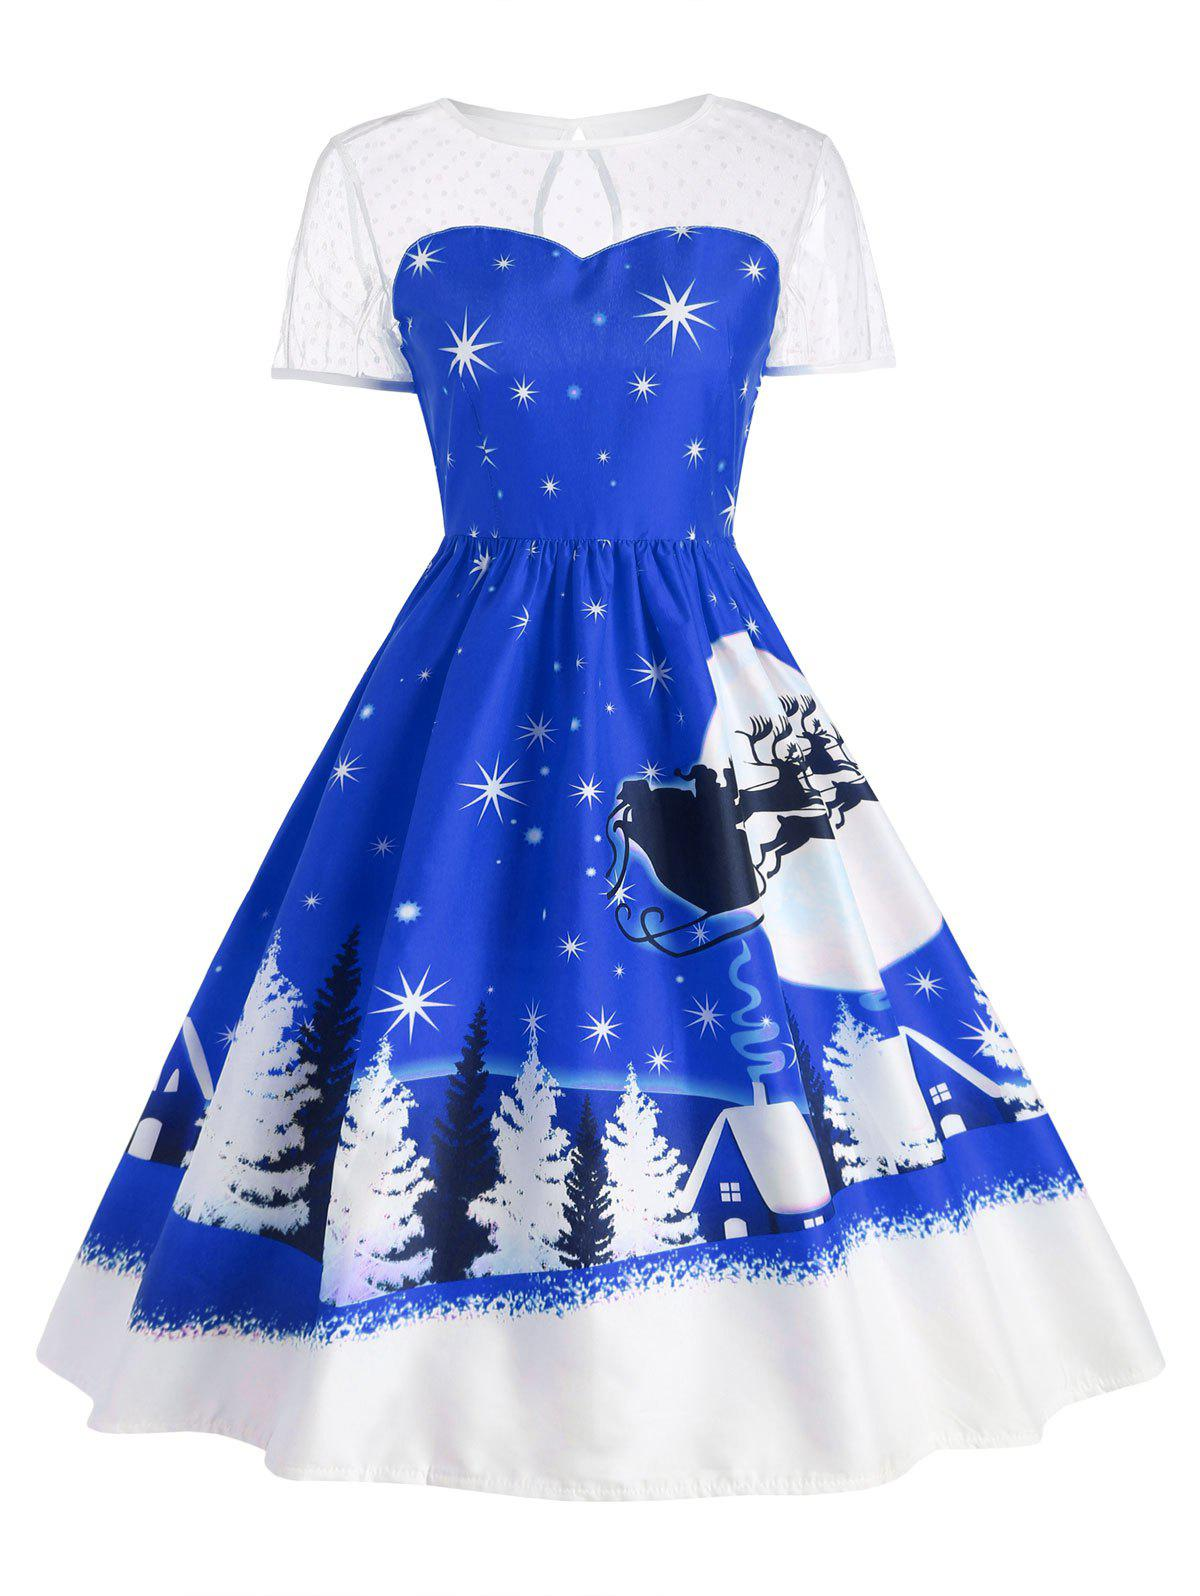 Santa Claus Deer Vintage Christmas DressWOMEN<br><br>Size: S; Color: BLUE; Style: Cute; Material: Polyester; Silhouette: Ball Gown; Dresses Length: Mid-Calf; Neckline: Round Collar; Sleeve Length: Short Sleeves; Pattern Type: Print; With Belt: No; Season: Fall,Winter; Weight: 0.2400kg; Package Contents: 1 x Dress;